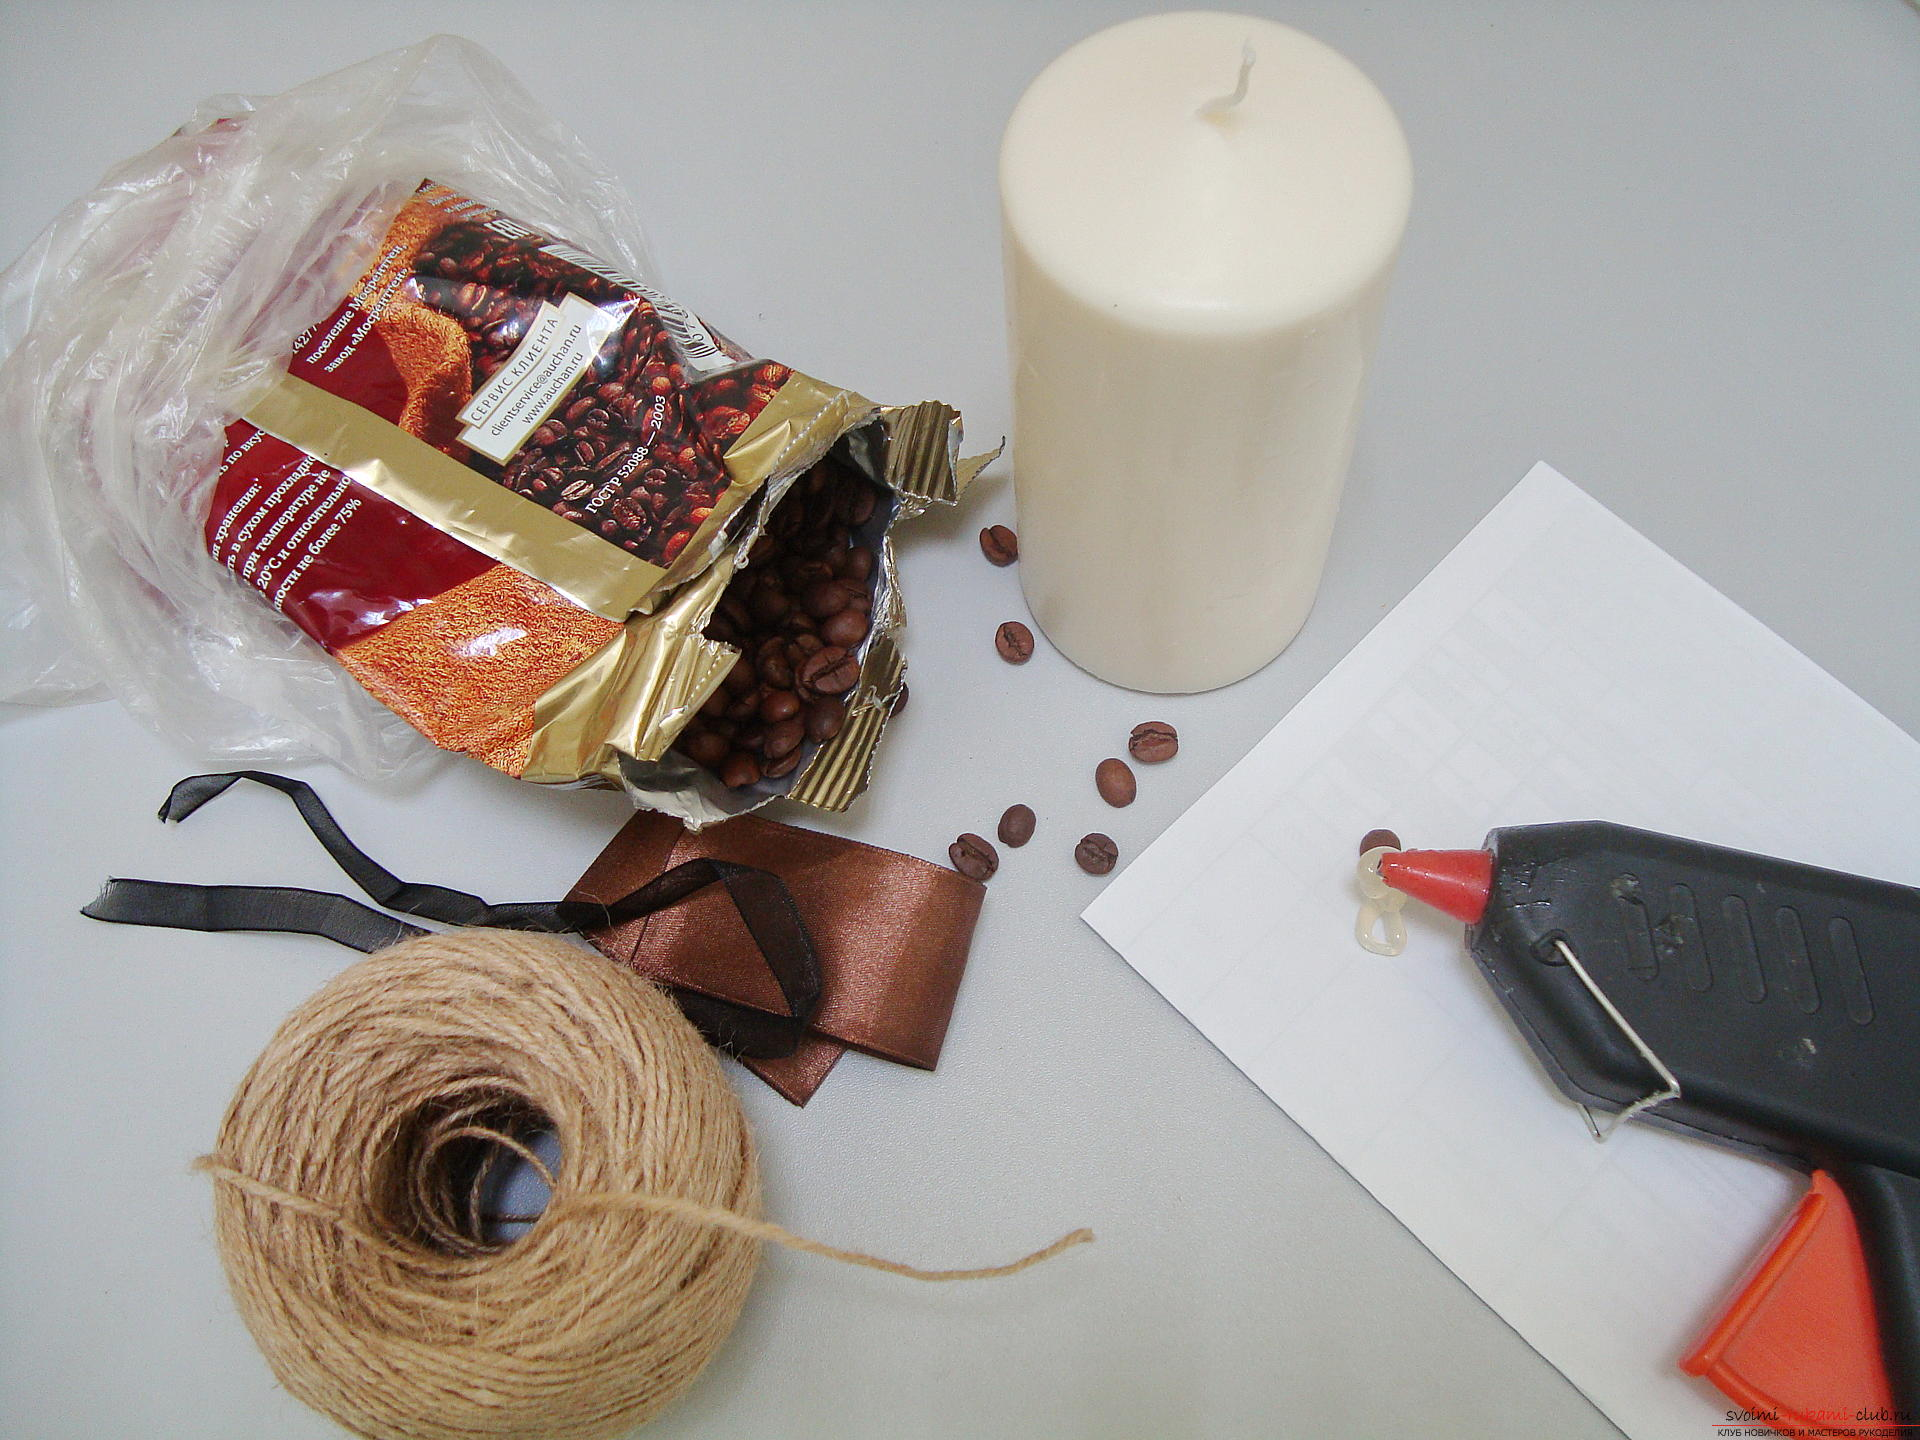 Photos to the step-by-step guide on making a decorative candle made from coffee beans. Photo # 2